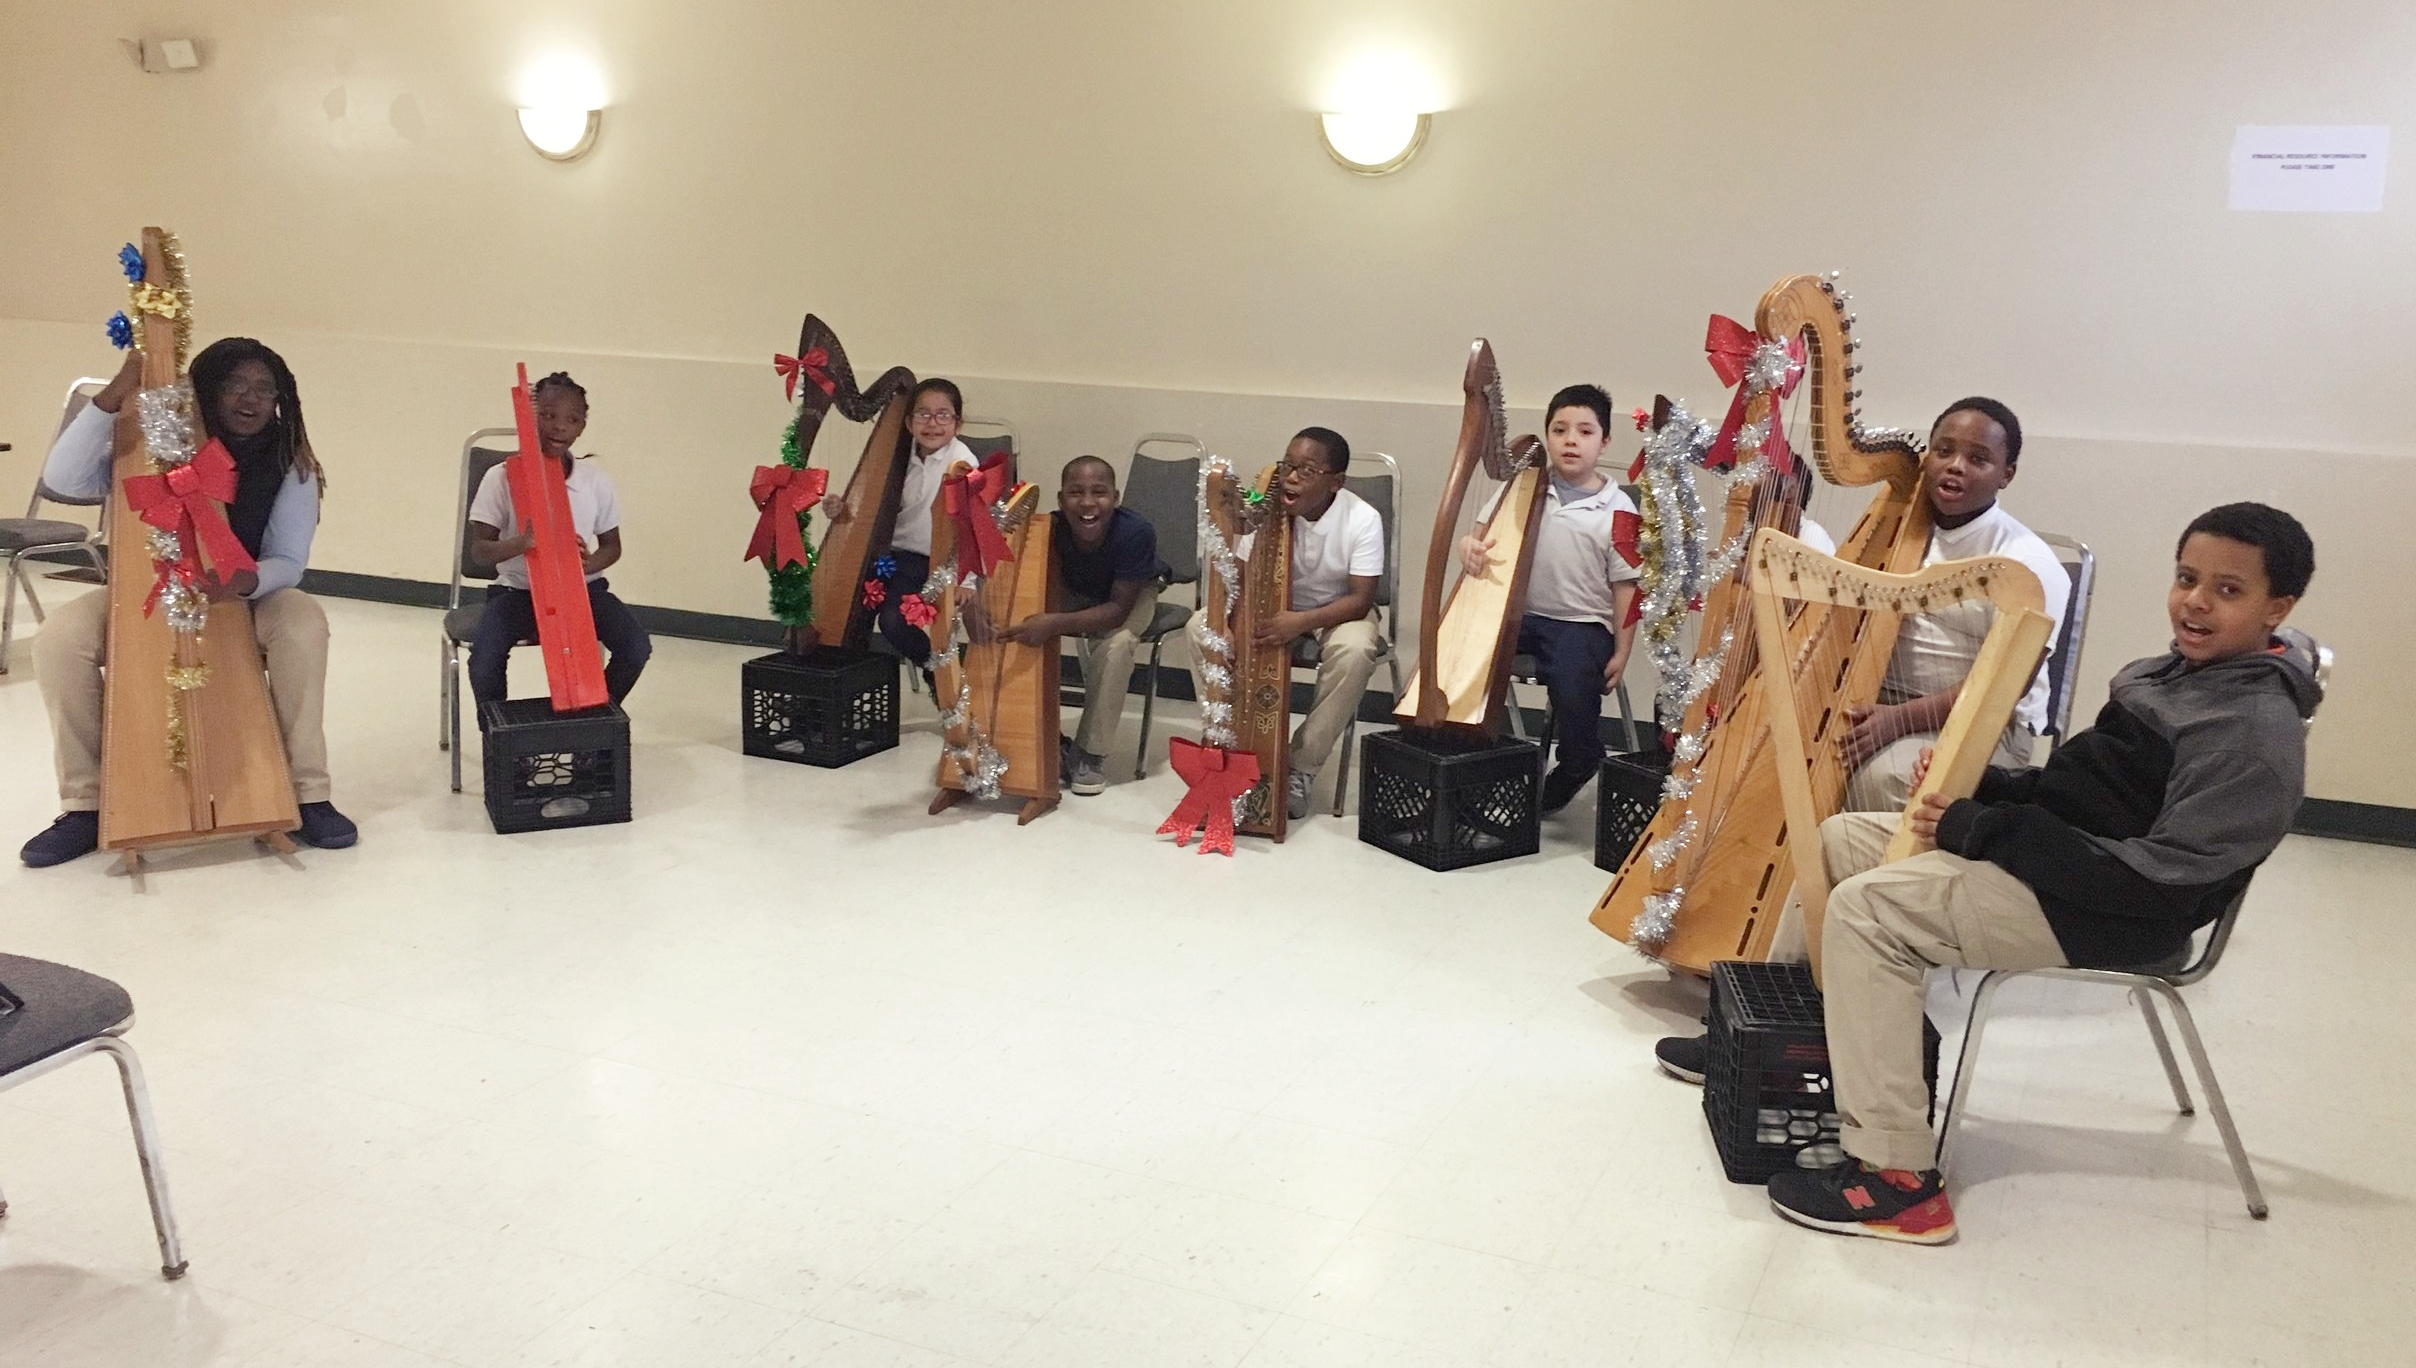 Druid Heights Harp Class with Highlandtown Elementary ORCHkids combined rehearsal